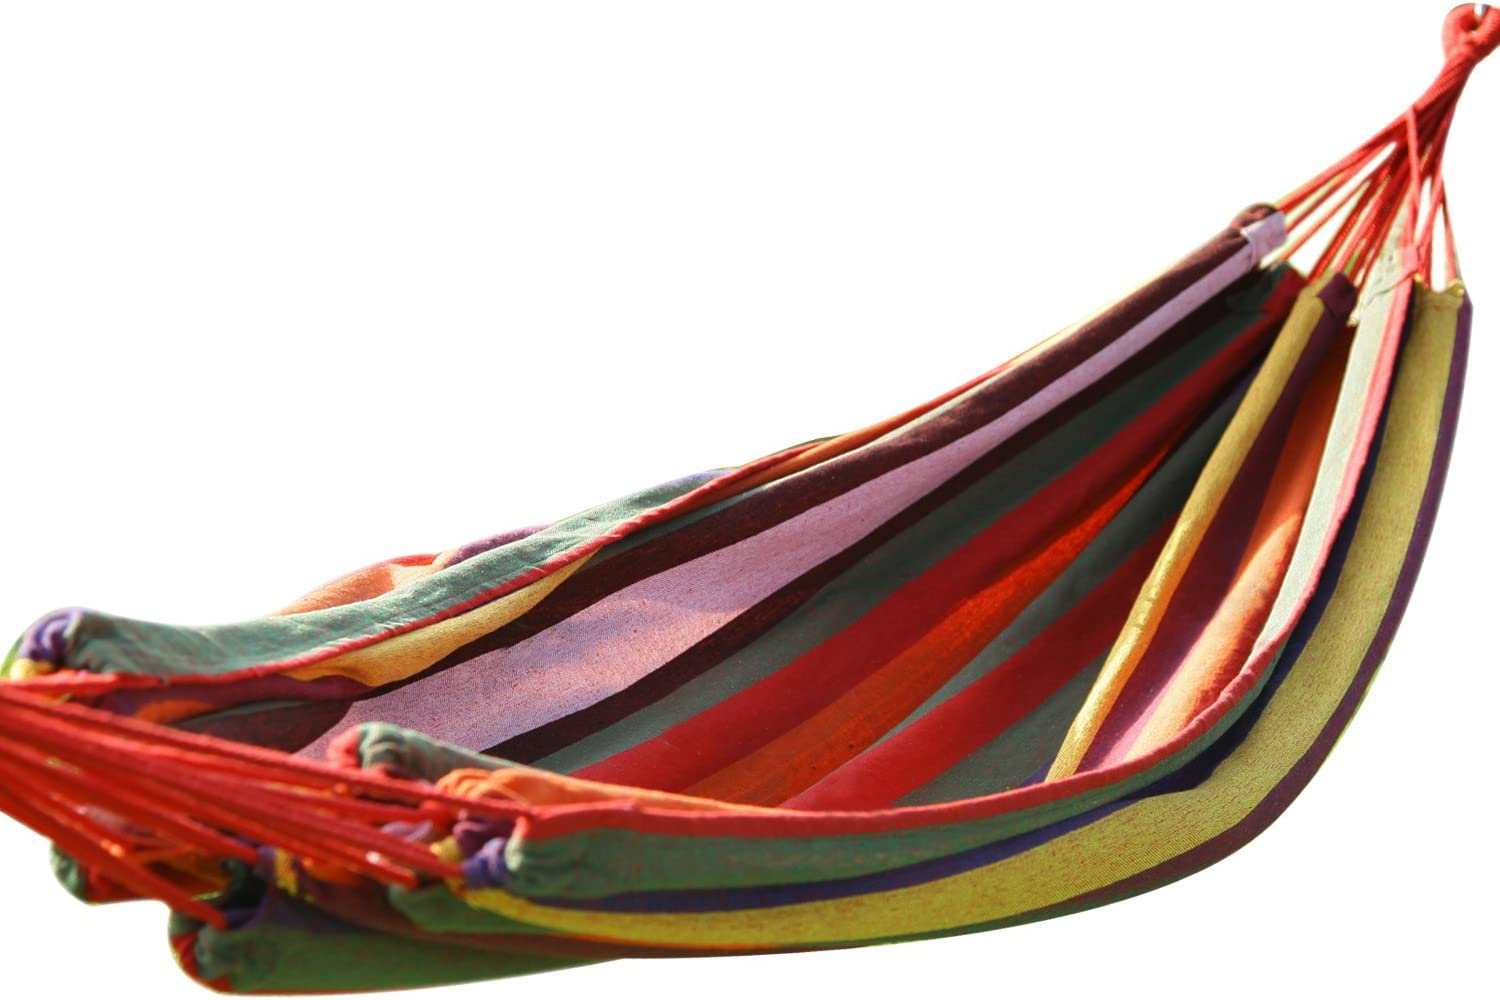 Adeco Hot Season, Hot Deal Naval-Style Cotton Fabric Canvas Hammock Tree Hanging Suspended Outdoor Indoor Bed Antigua Color, 63 Wide